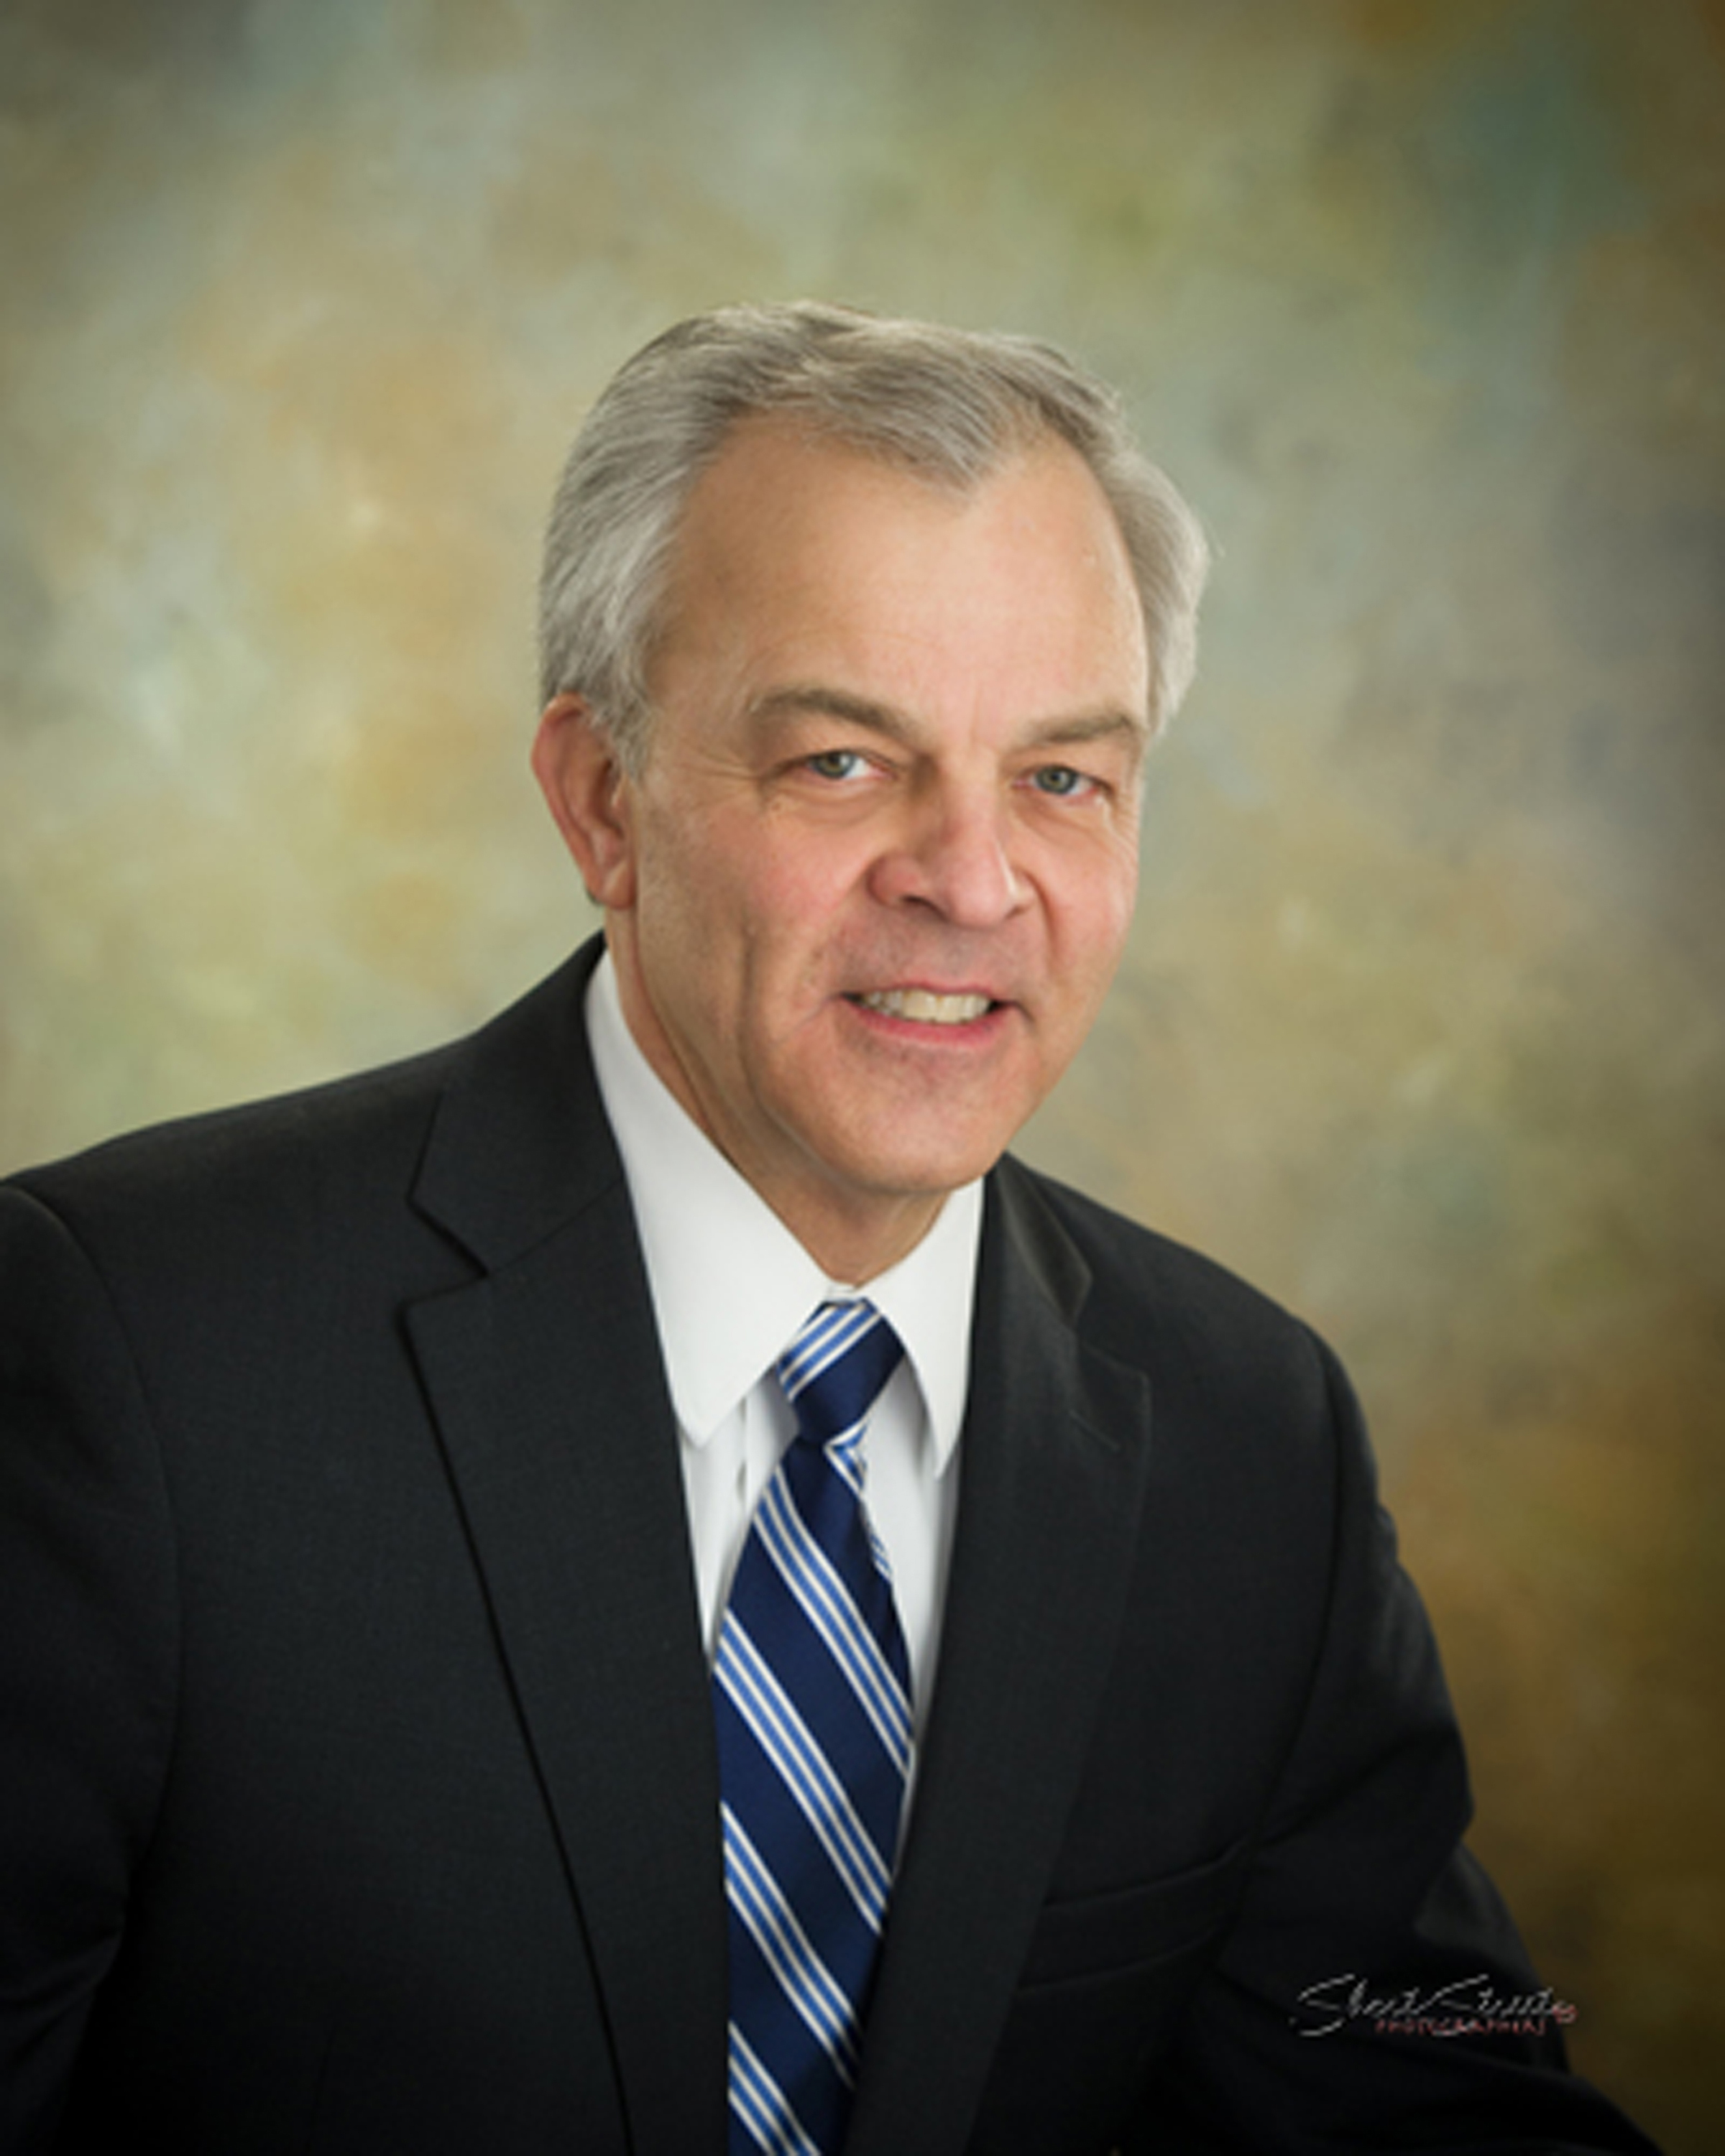 Ronald J. Tanski was elected as a new director for a term that expires in 2017. (Photo: Business Wire)